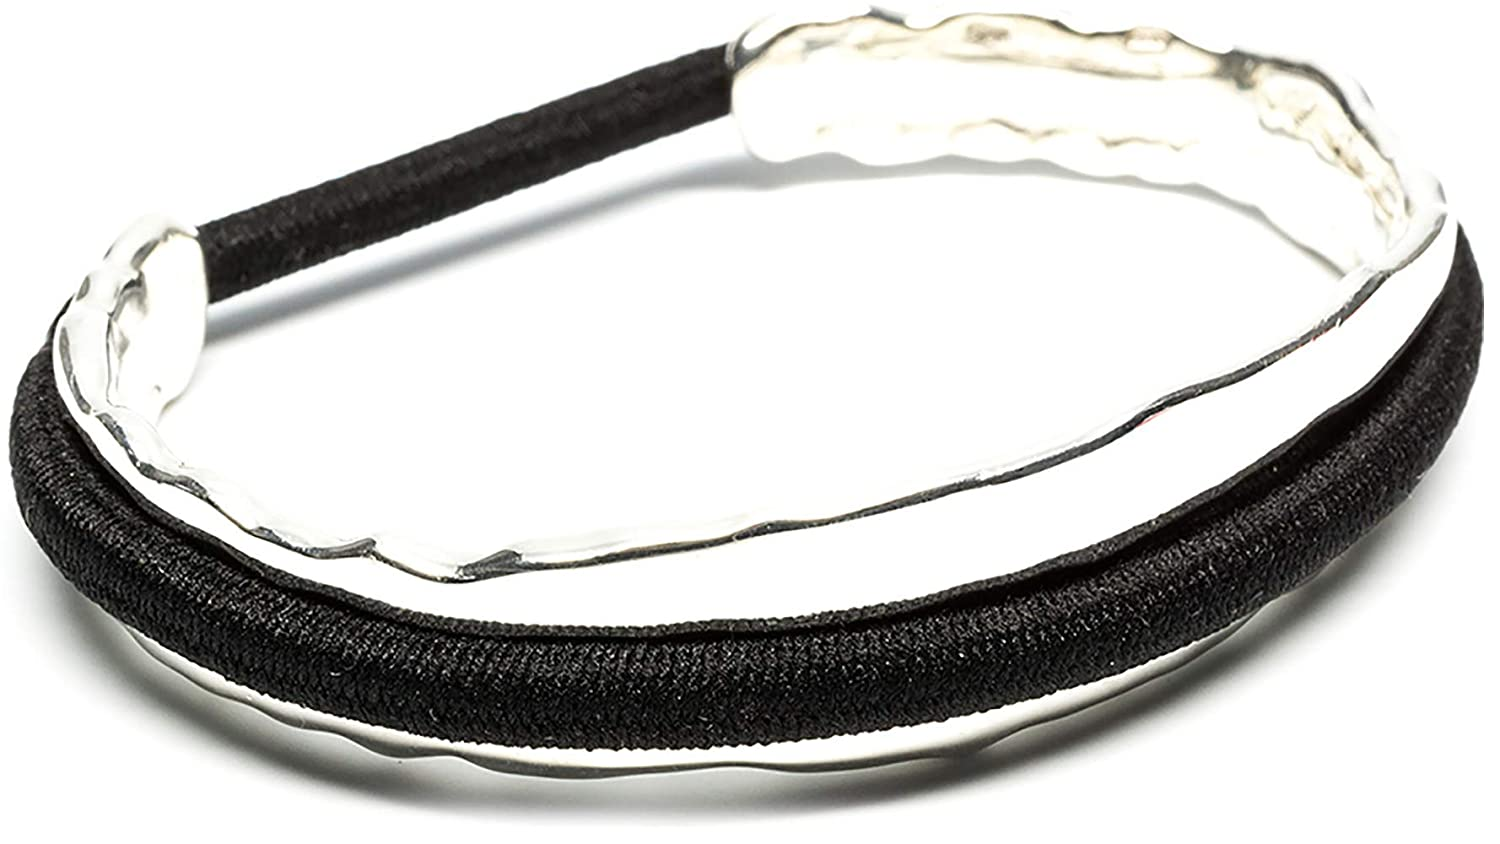 Amazon.com   Maria Shireen  Original Design Hair Tie Bracelet - Stainless  Steel Hair Tie Holder - Functional Fashion Accessory - Keeps Track of Hair  Ties ... 8a4d67874aa